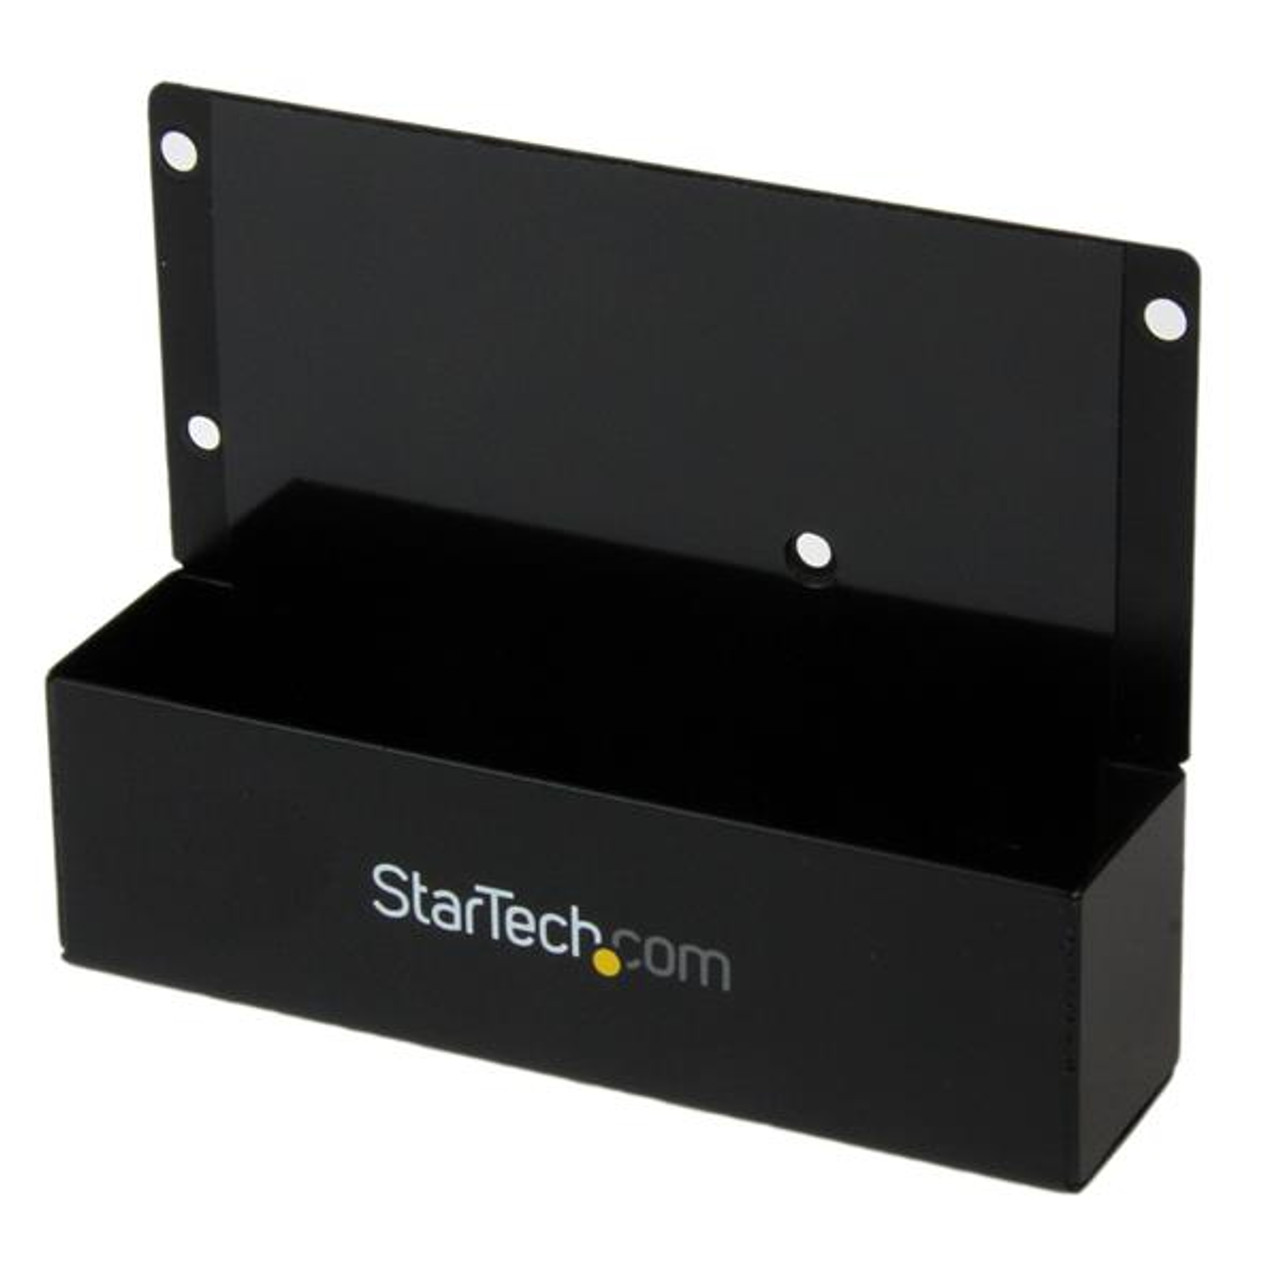 Image for StarTech SATA to 2.5in or 3.5in IDE Hard Drive Adapter for HDD Docks CX Computer Superstore